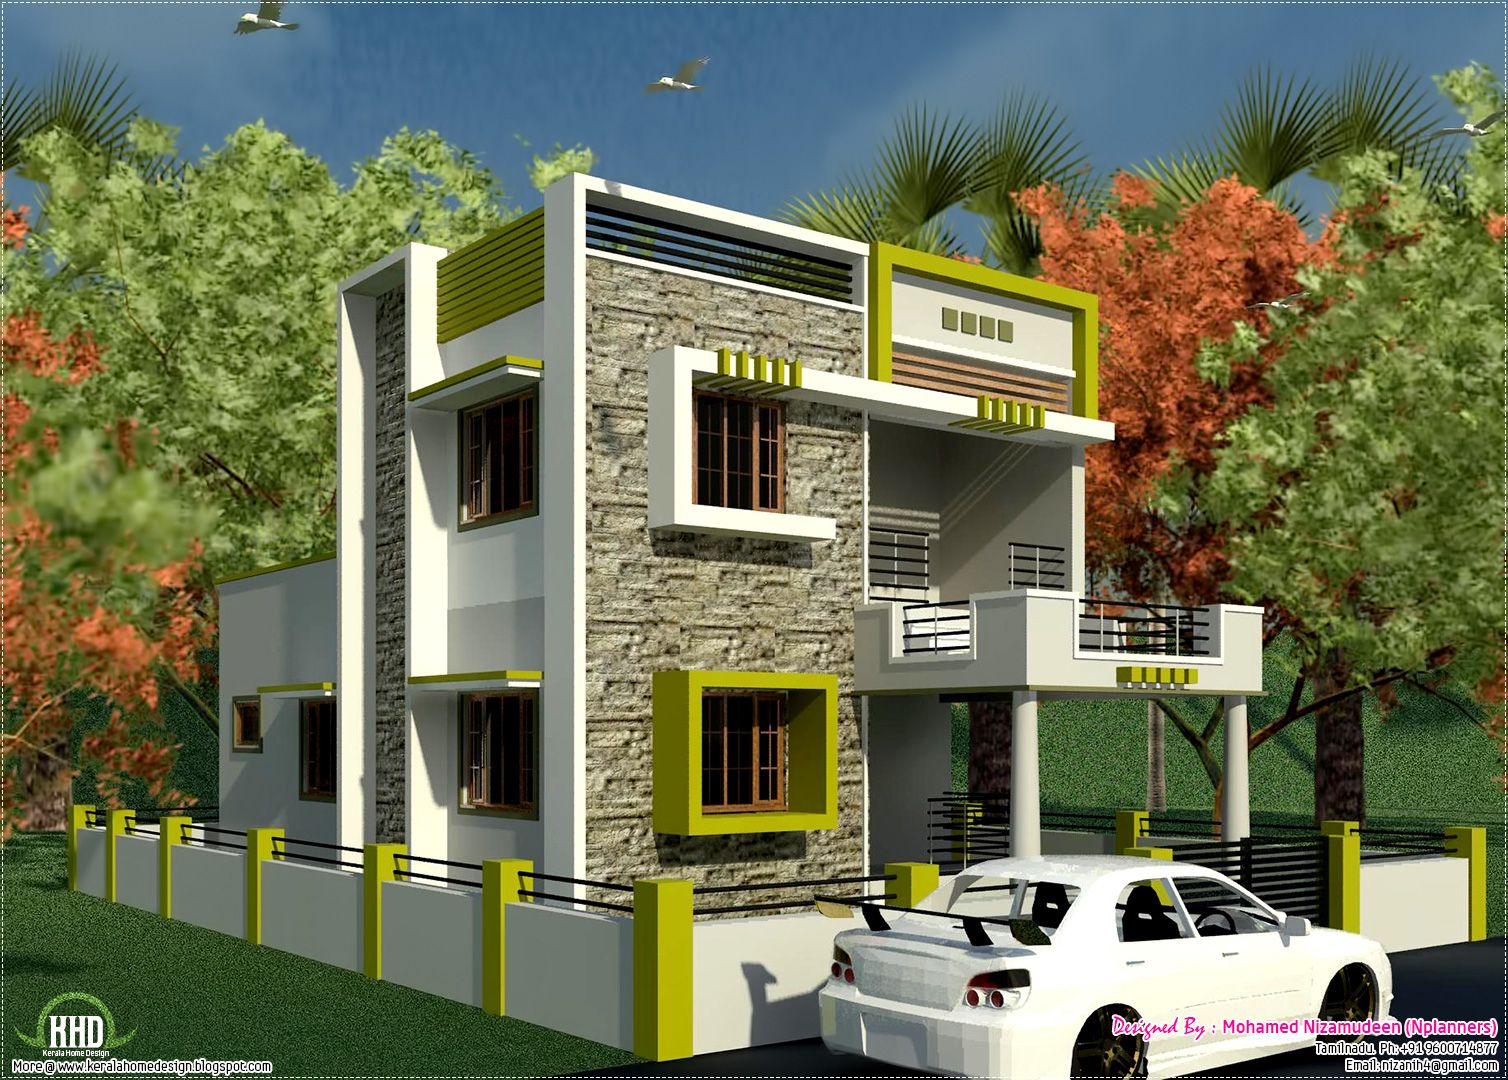 Small House With Car Park Design TOBFAVCOM Ideas for the